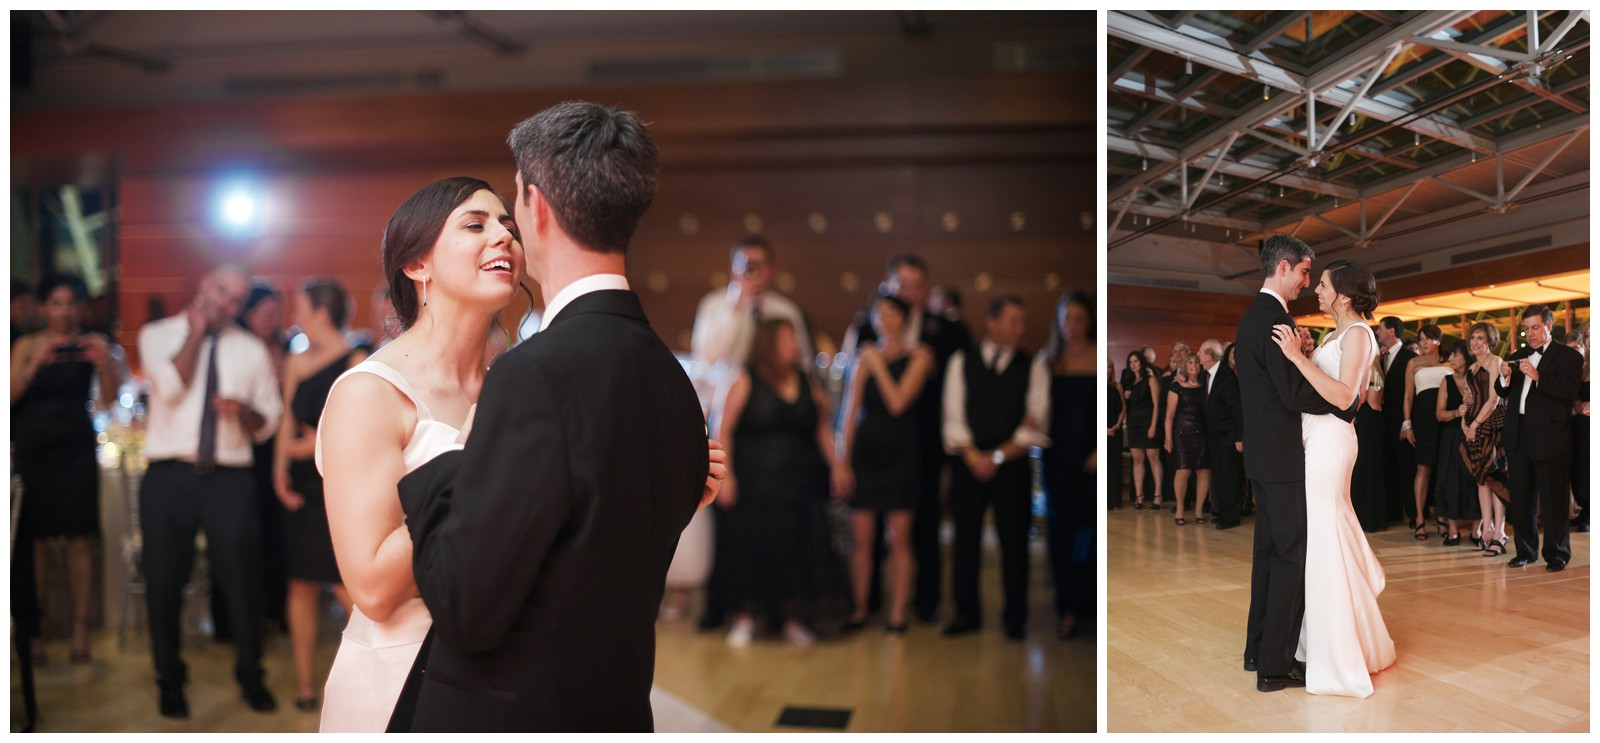 Vanessa and Adam's Wedding at Kimmel Center Philadelphia_0059